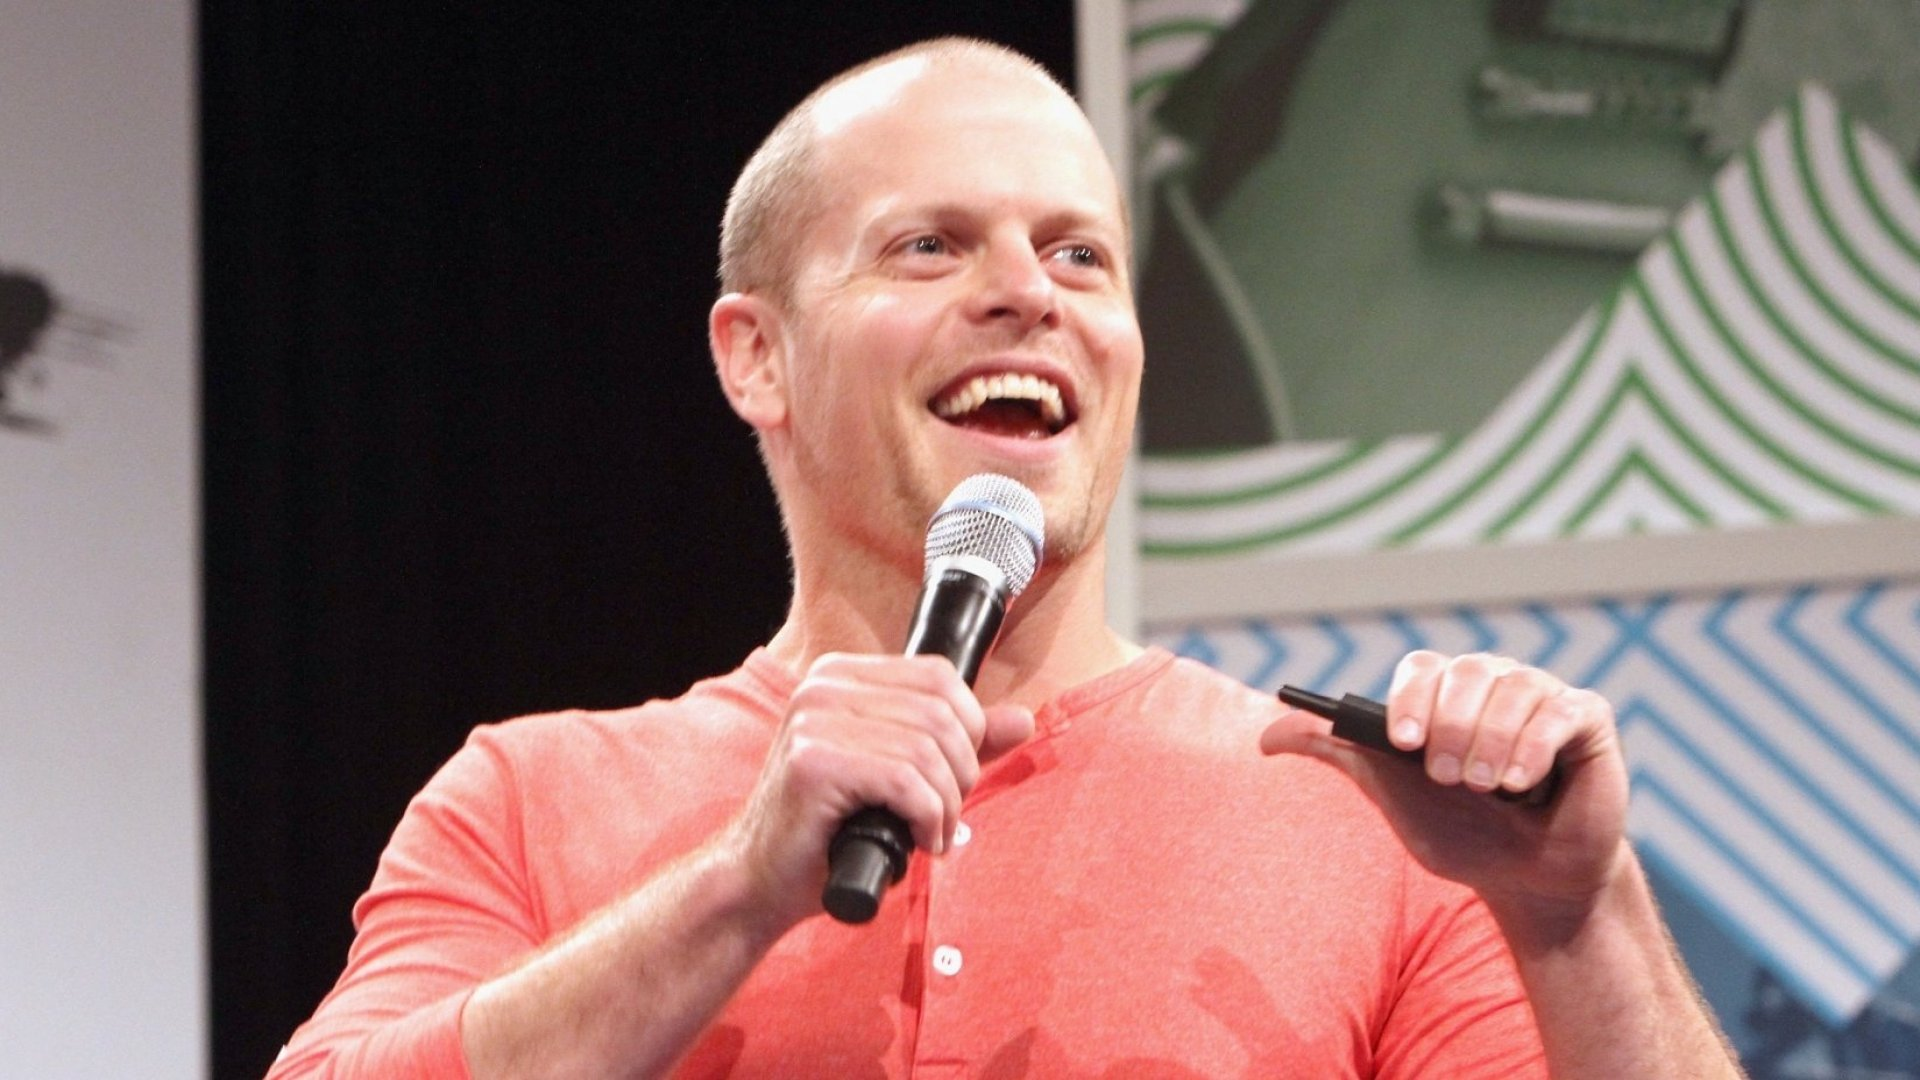 The Secret to Networking Success, According to Tim Ferriss